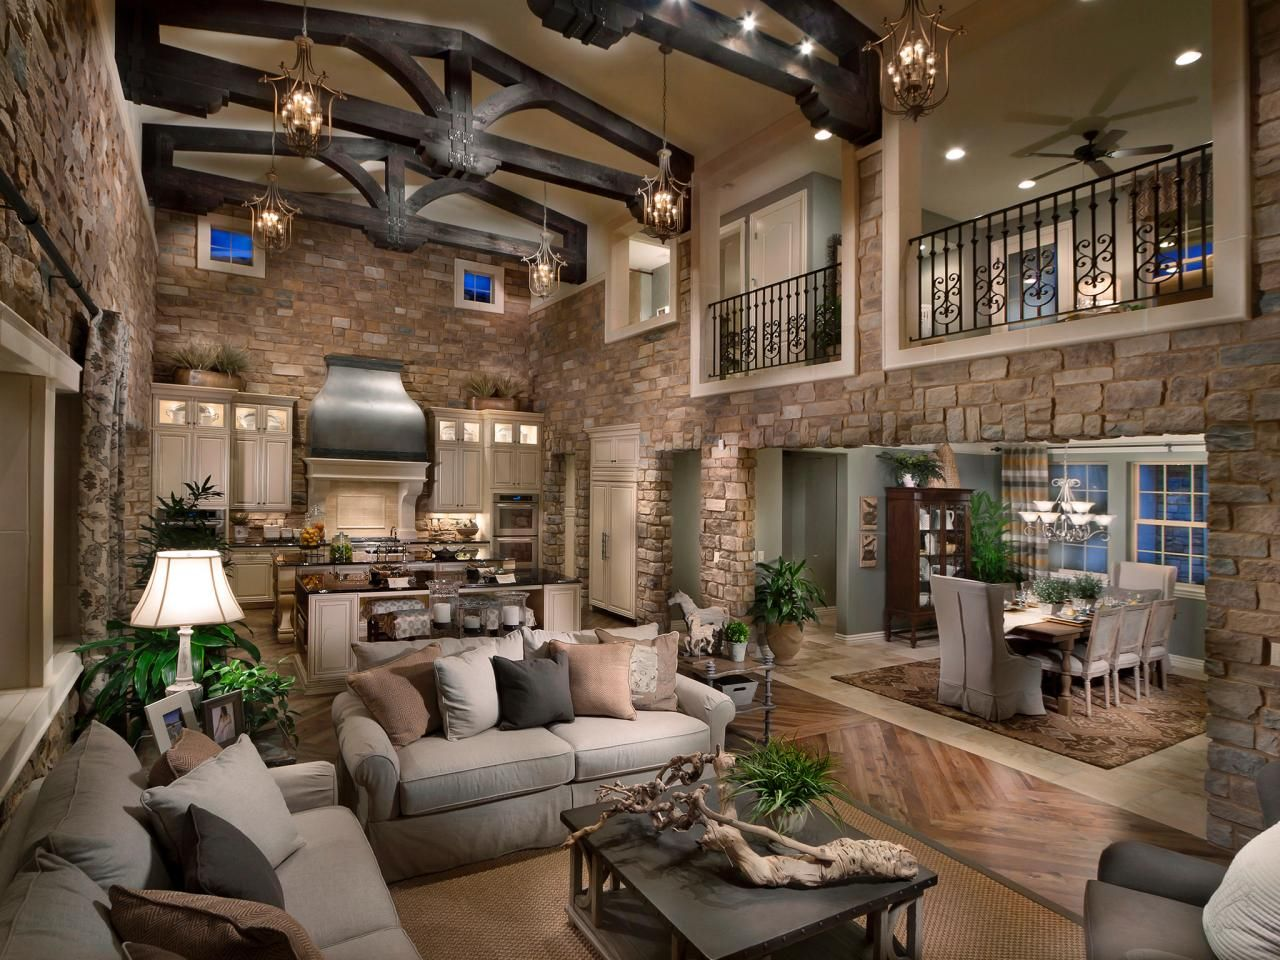 Best This Rustic Living Room And Kitchen Is A Magnificent Space 400 x 300